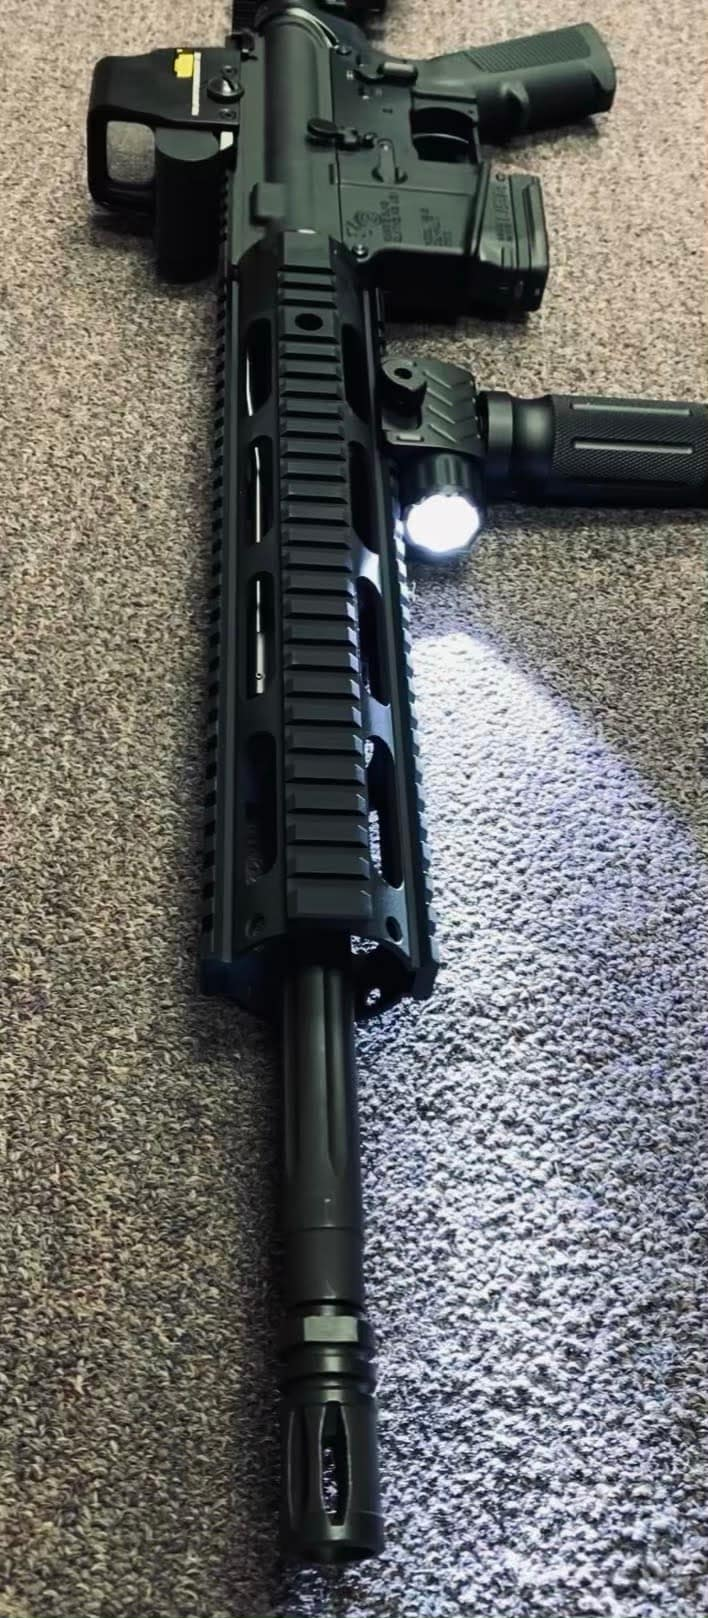 ANDERSON MFG. fully loaded ar15 am15 with 10rd magazine